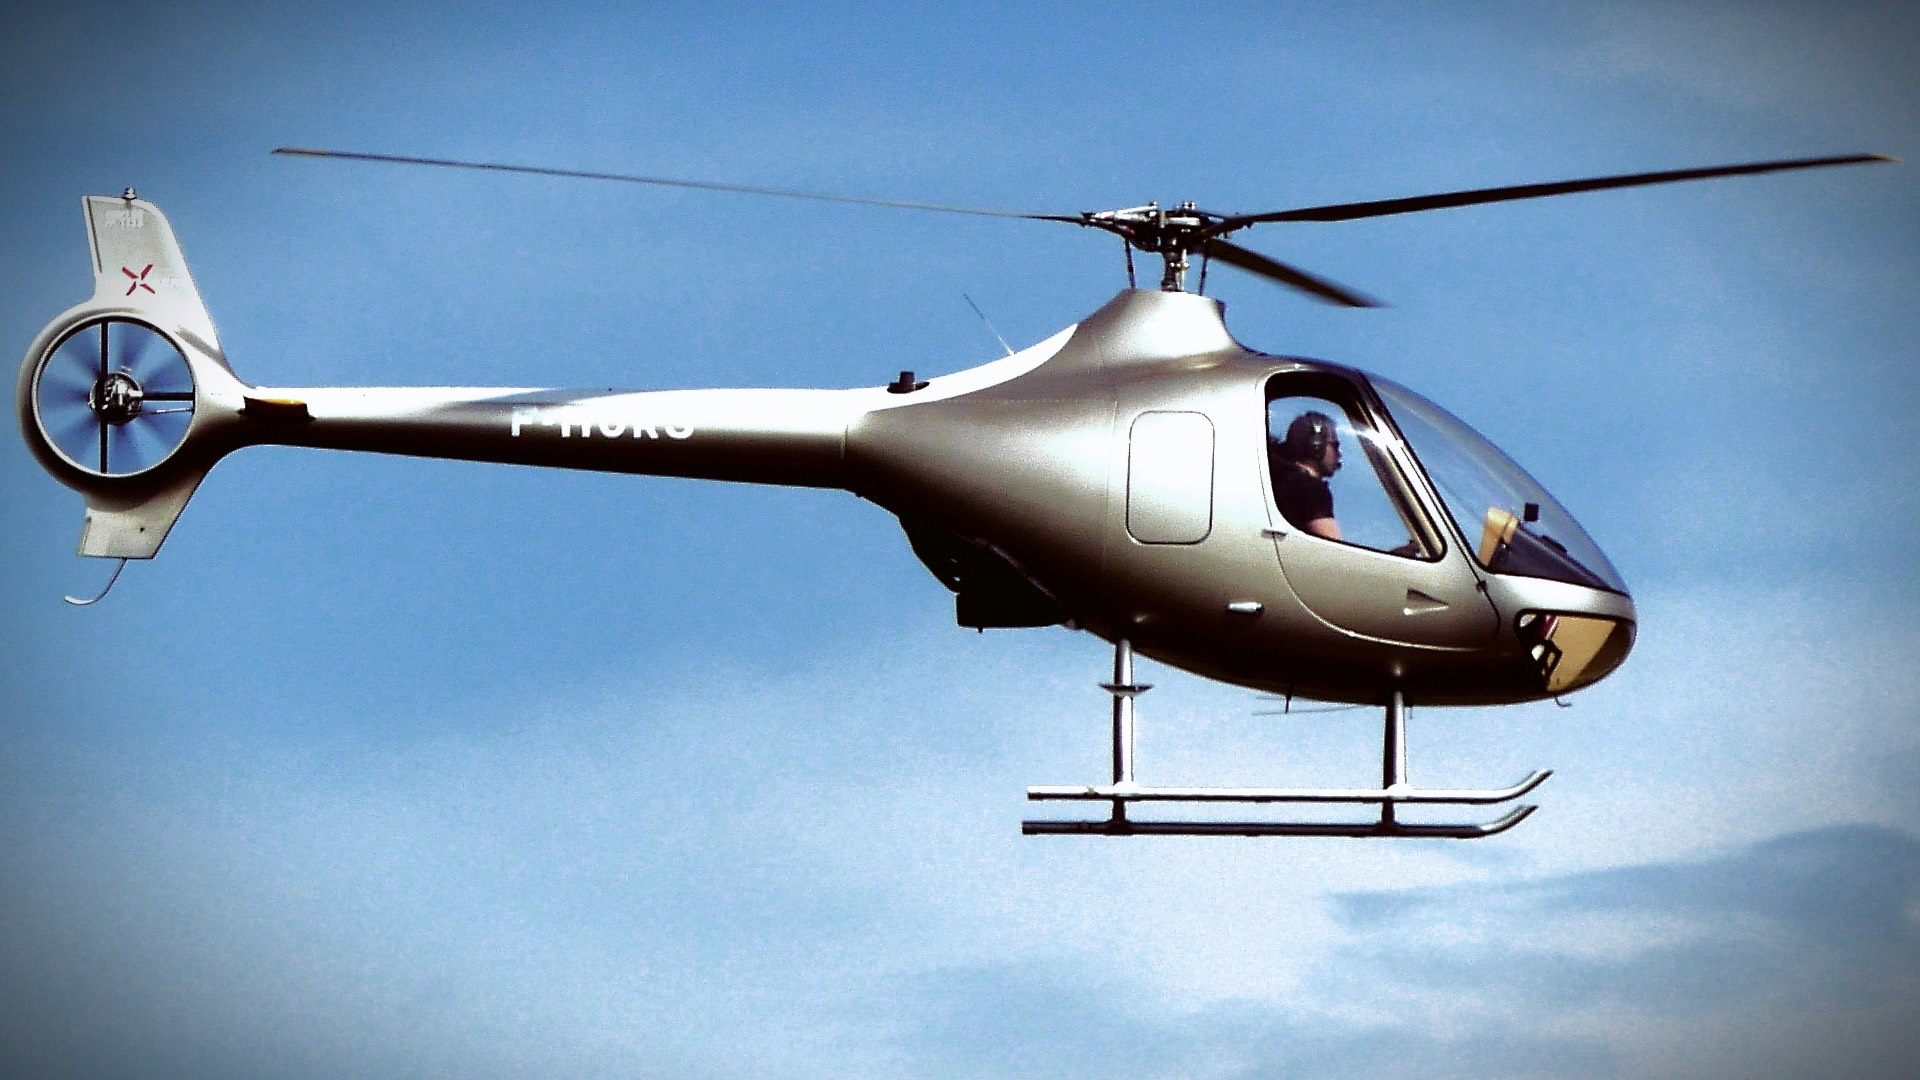 Cabri g2 helicoptere 1